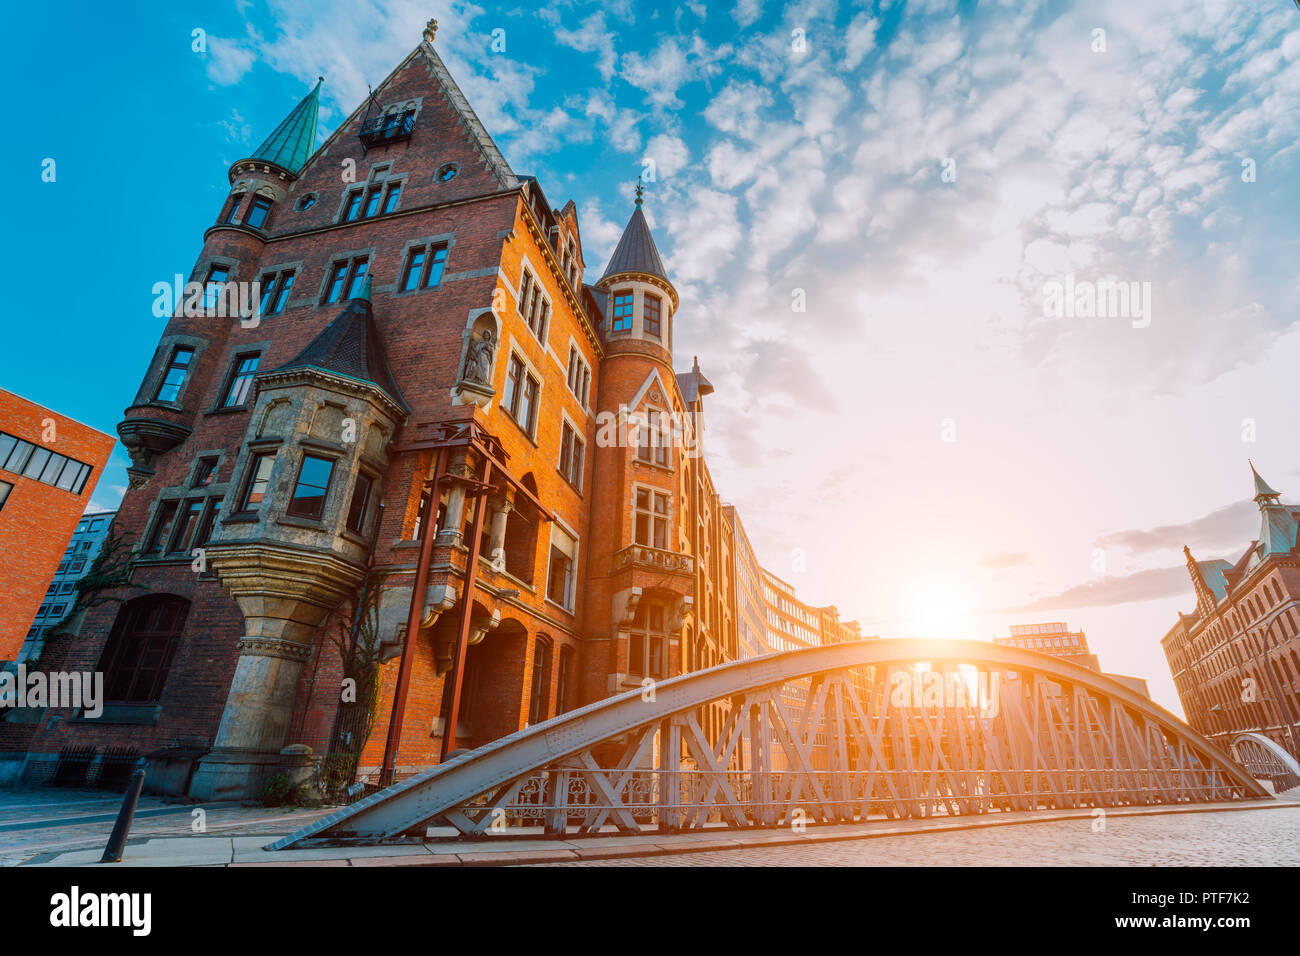 Metal arch bridge and old red bricks building in the Speicherstadt warehouse district of Hamburg HafenCity with sunburst light during sunset golden hour and white clouds against blue sky above - Stock Image